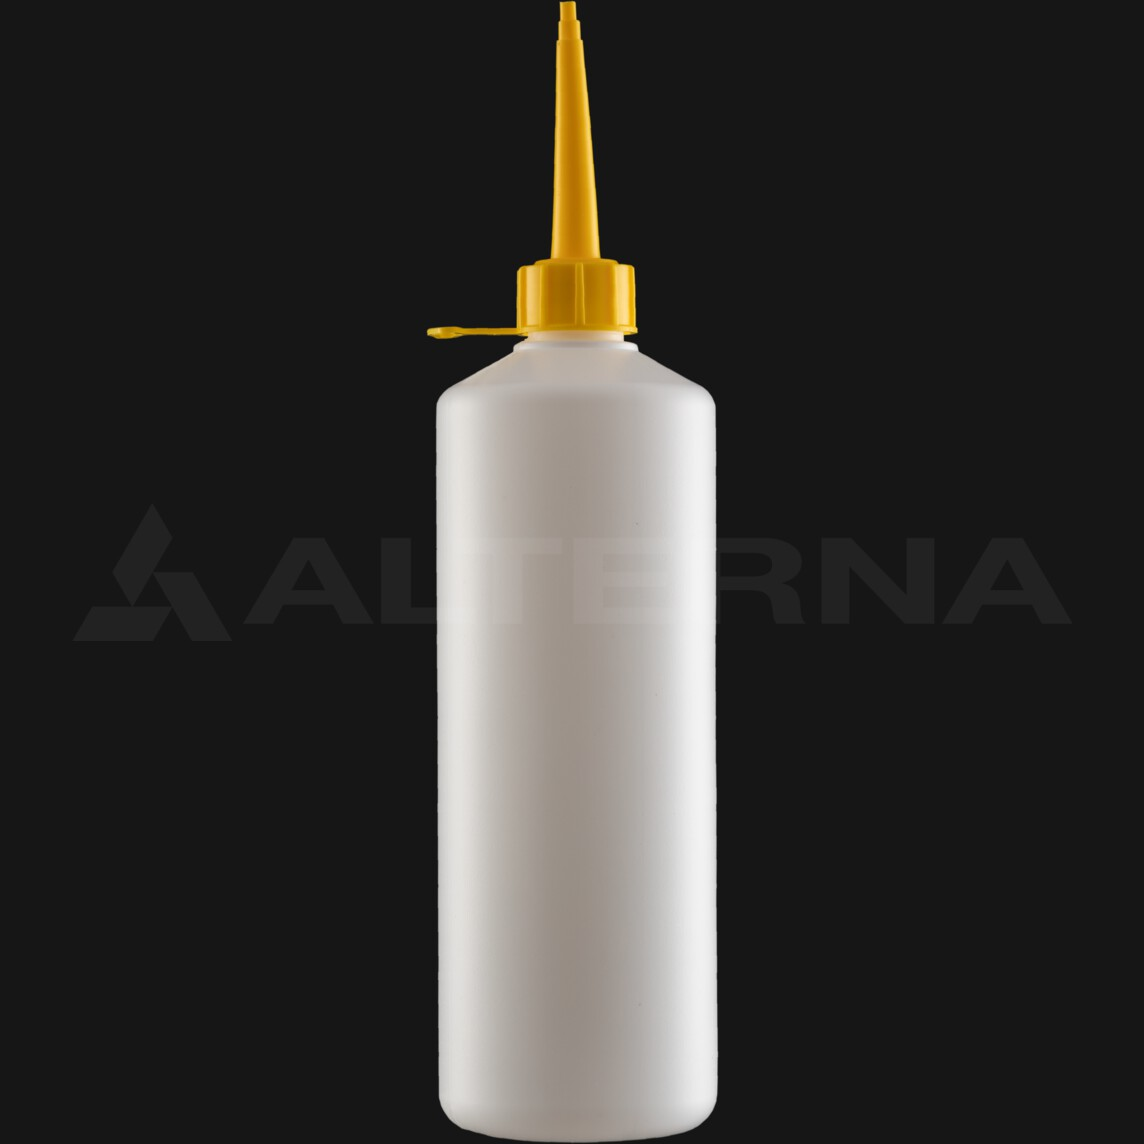 750 ml HDPE Bottle with 28 mm Glue Cap